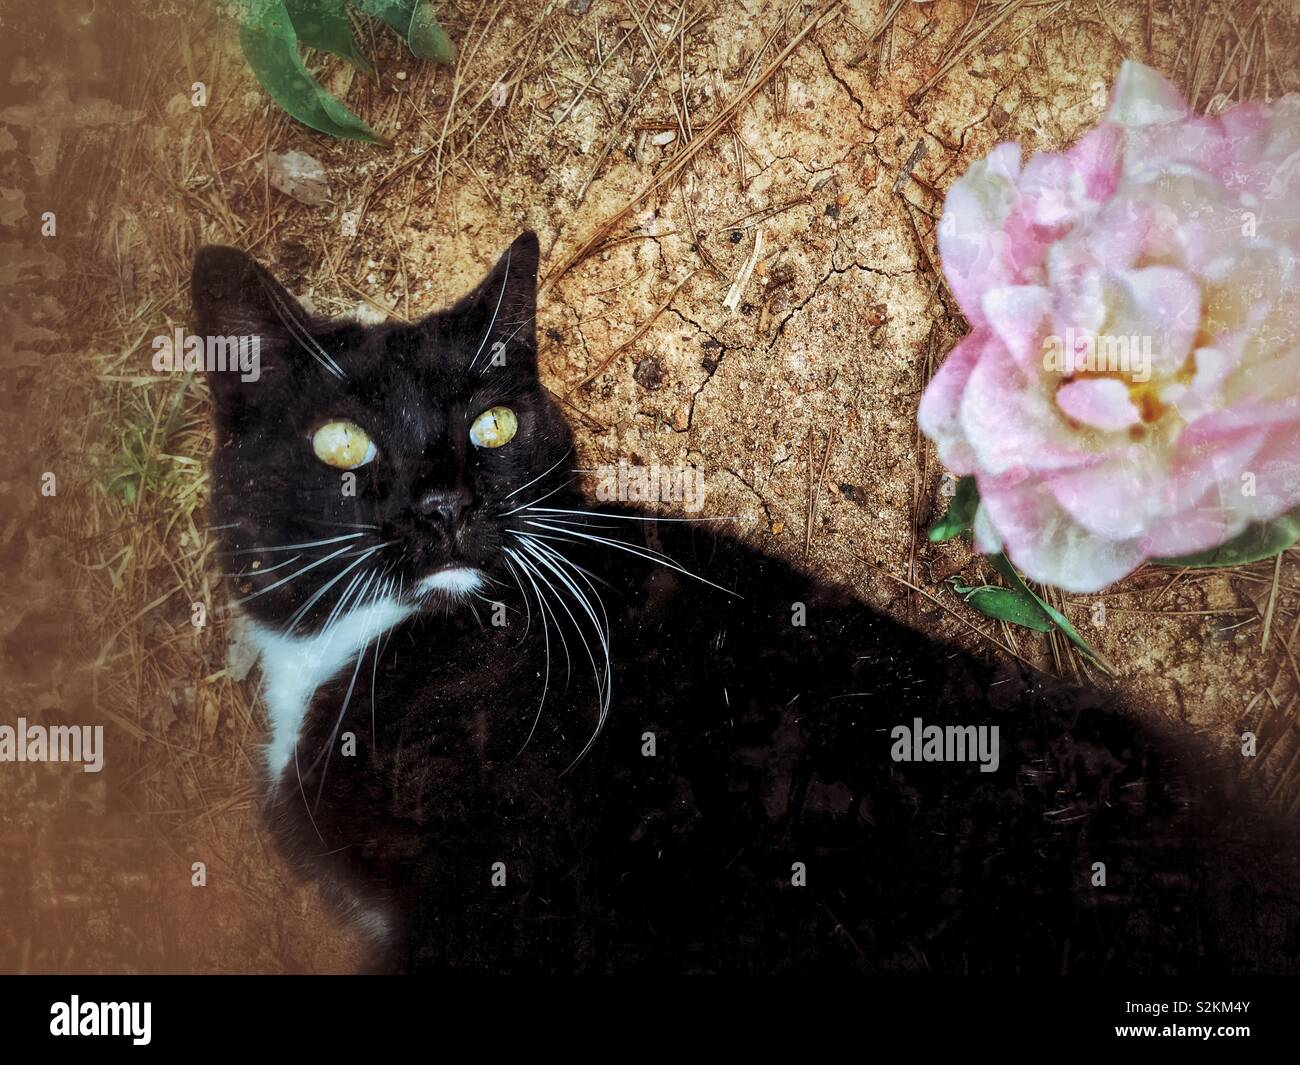 Black and white tuxedo kitty eyes frilly pink tulip from the ground - Stock Image